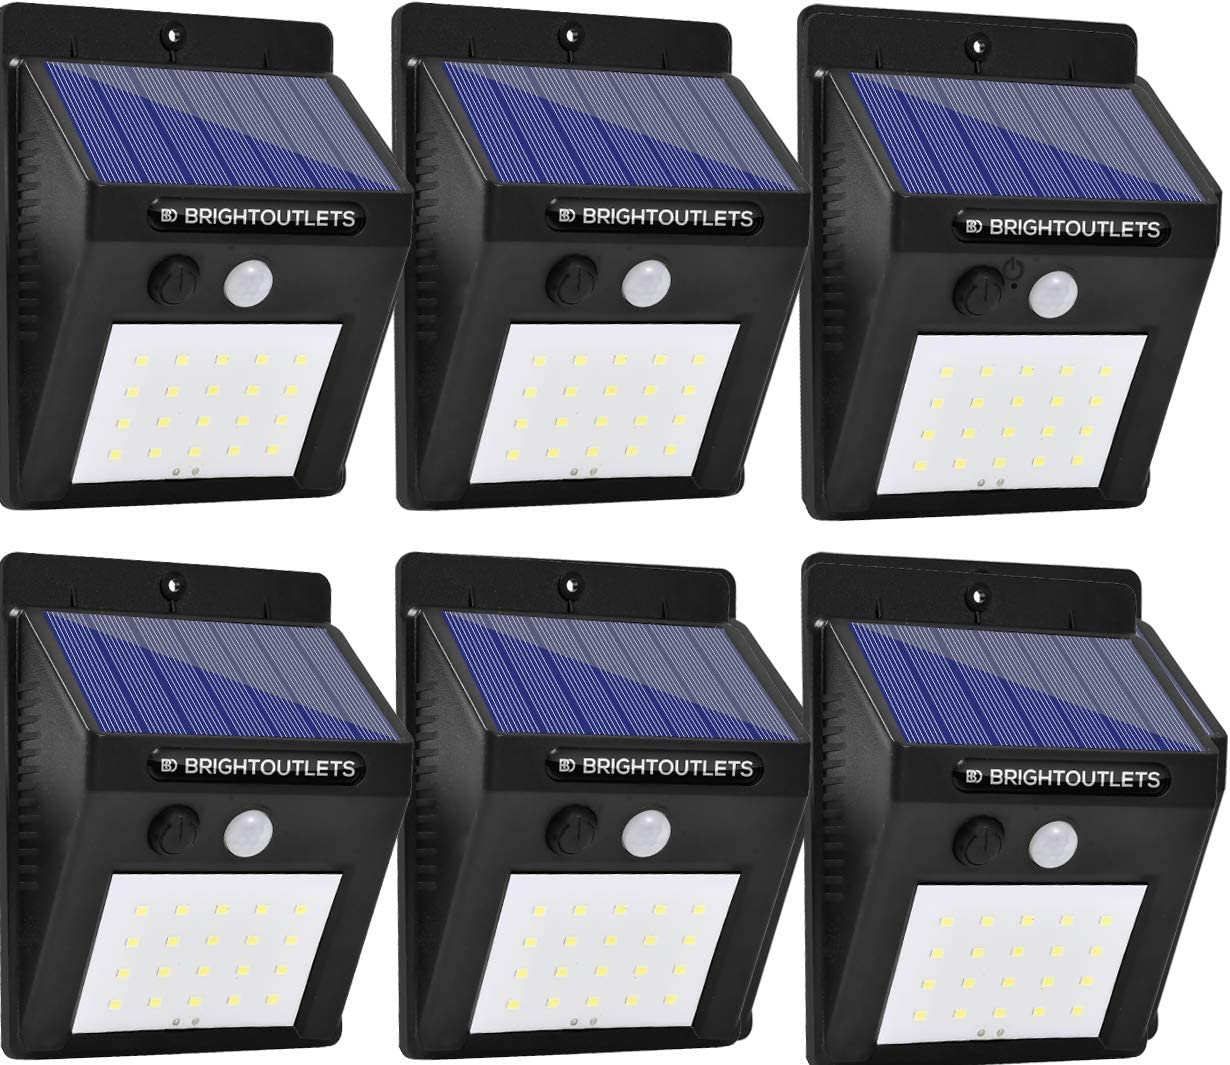 Solar Lights Outdoor, Motion Sensor Light 20 LED Flood Lights for Home Security, Patio, Wall, Pathway, Garden, Yard Bright Waterproof Dusk to Dawn Lighting 6-Pack Pin Activation